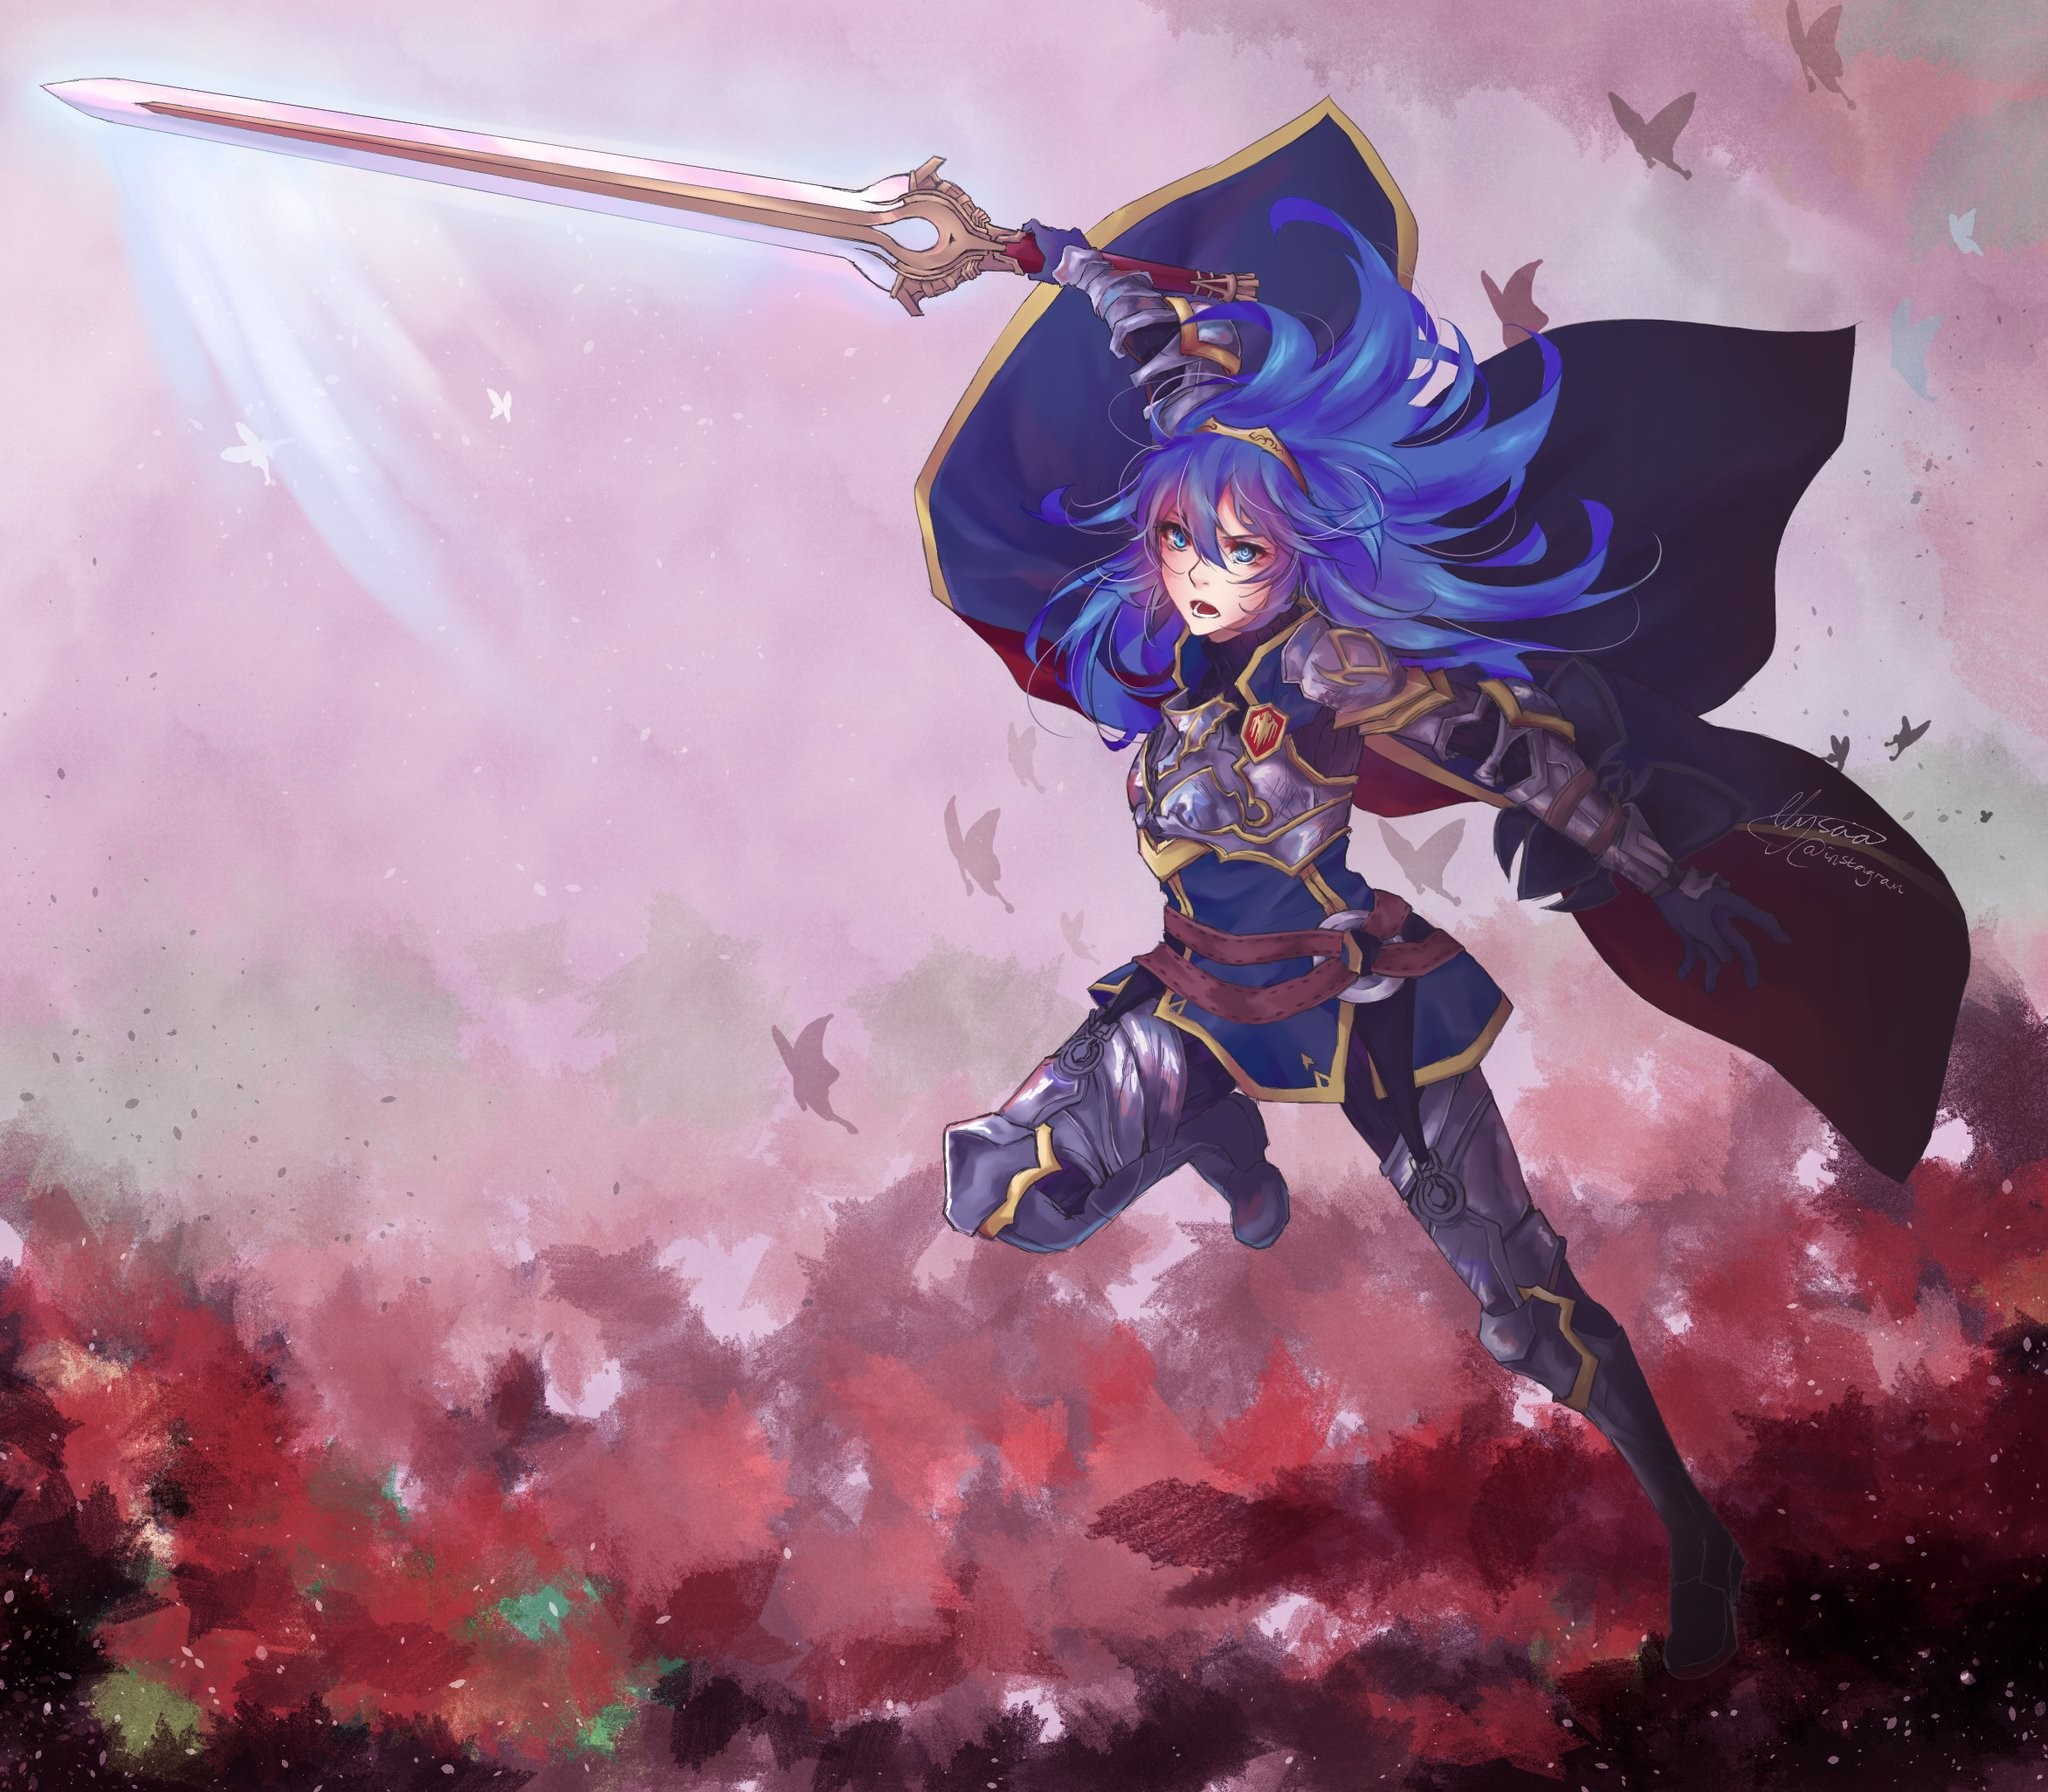 Fire emblem · Lucina as Great Lord commissioned artwork